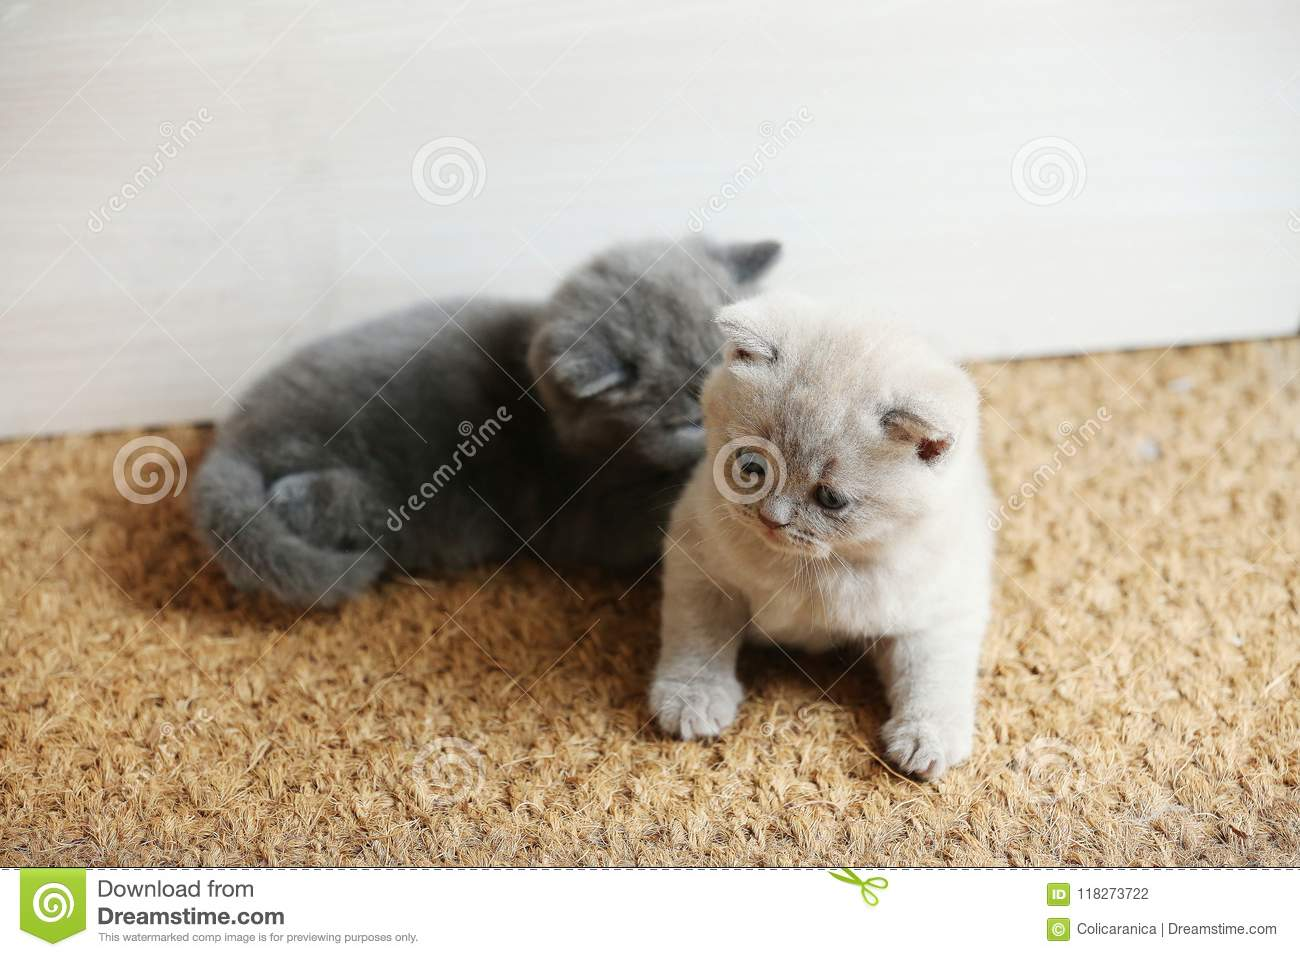 British Shorthair Kittens Sitting On The Doormat Stock Photo Image Of Cats Lying 118273722